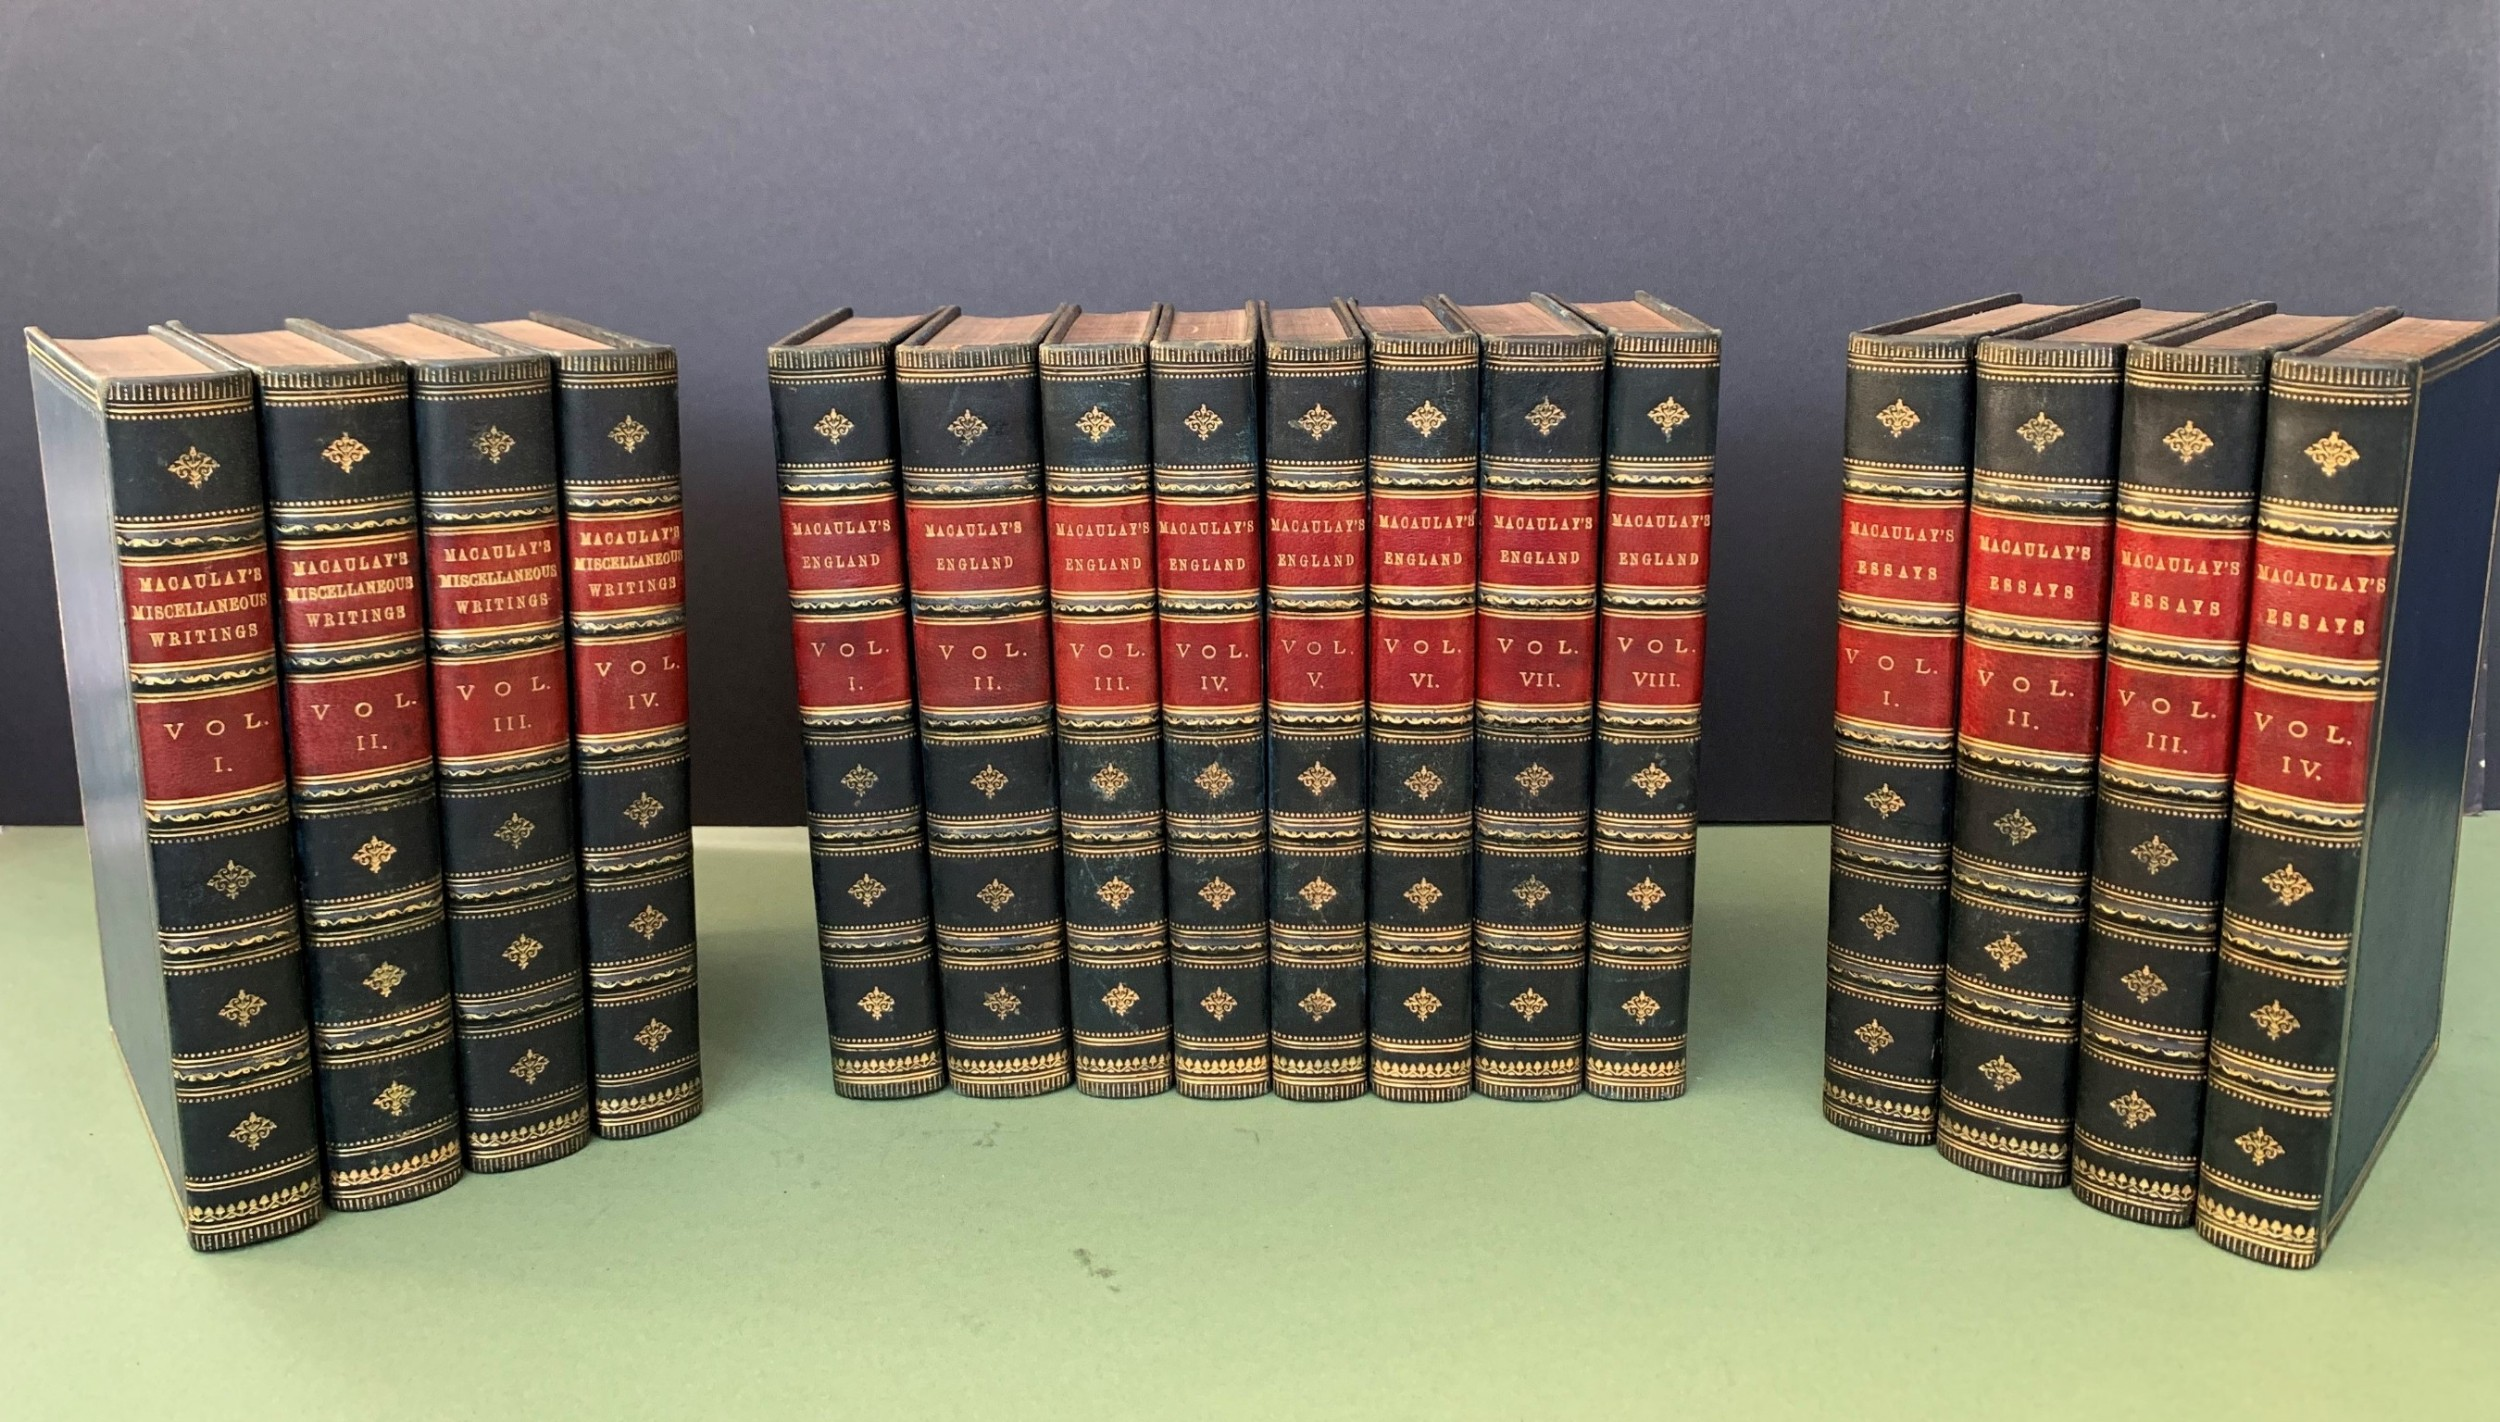 3 sets of works by lord macaulay in 16 uniformly bound leather books 18801895